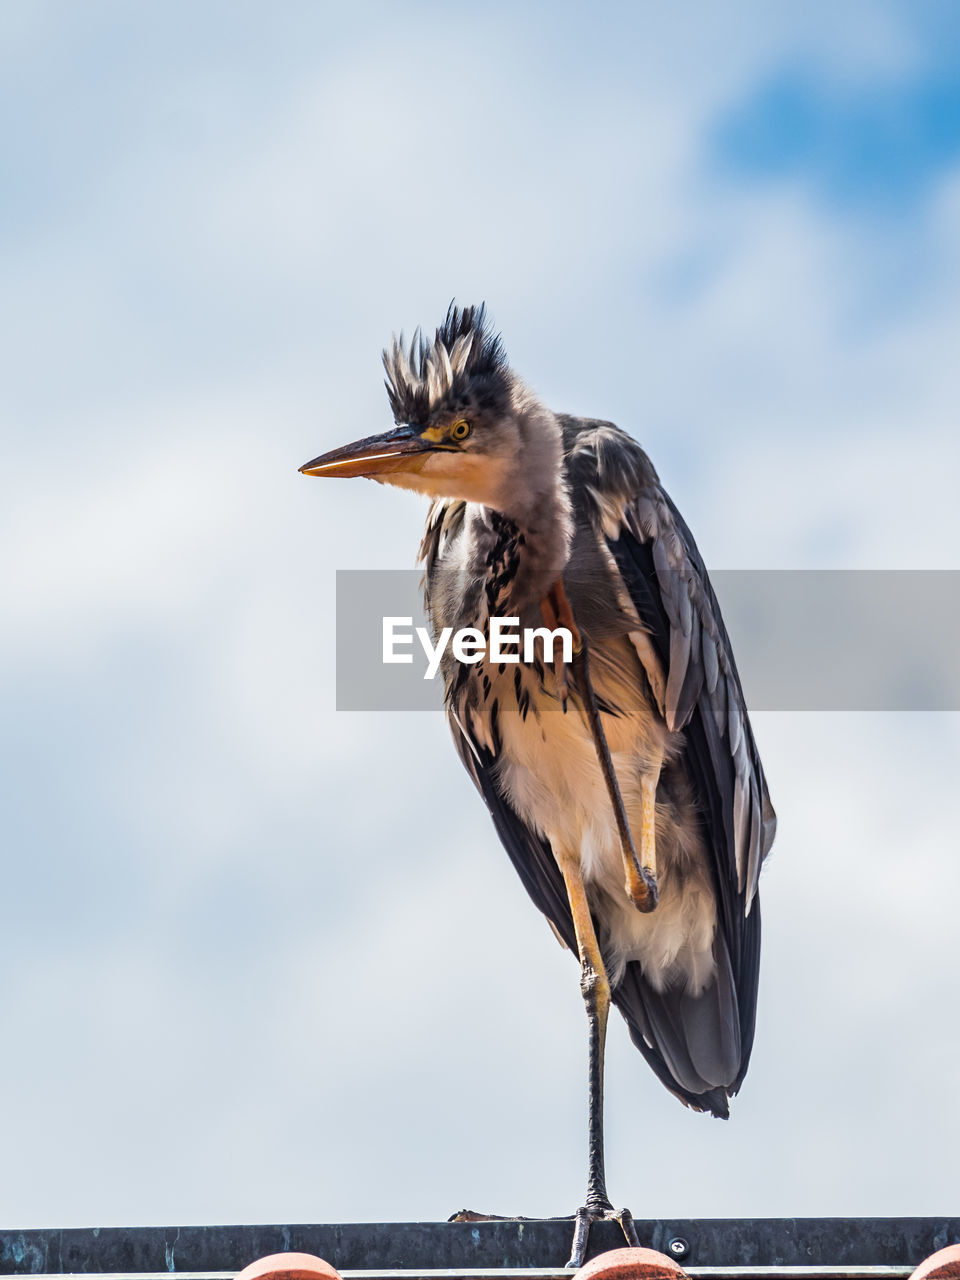 bird, one animal, animal themes, animal, vertebrate, animals in the wild, animal wildlife, focus on foreground, sky, perching, no people, nature, day, close-up, heron, beauty in nature, beak, outdoors, full length, water